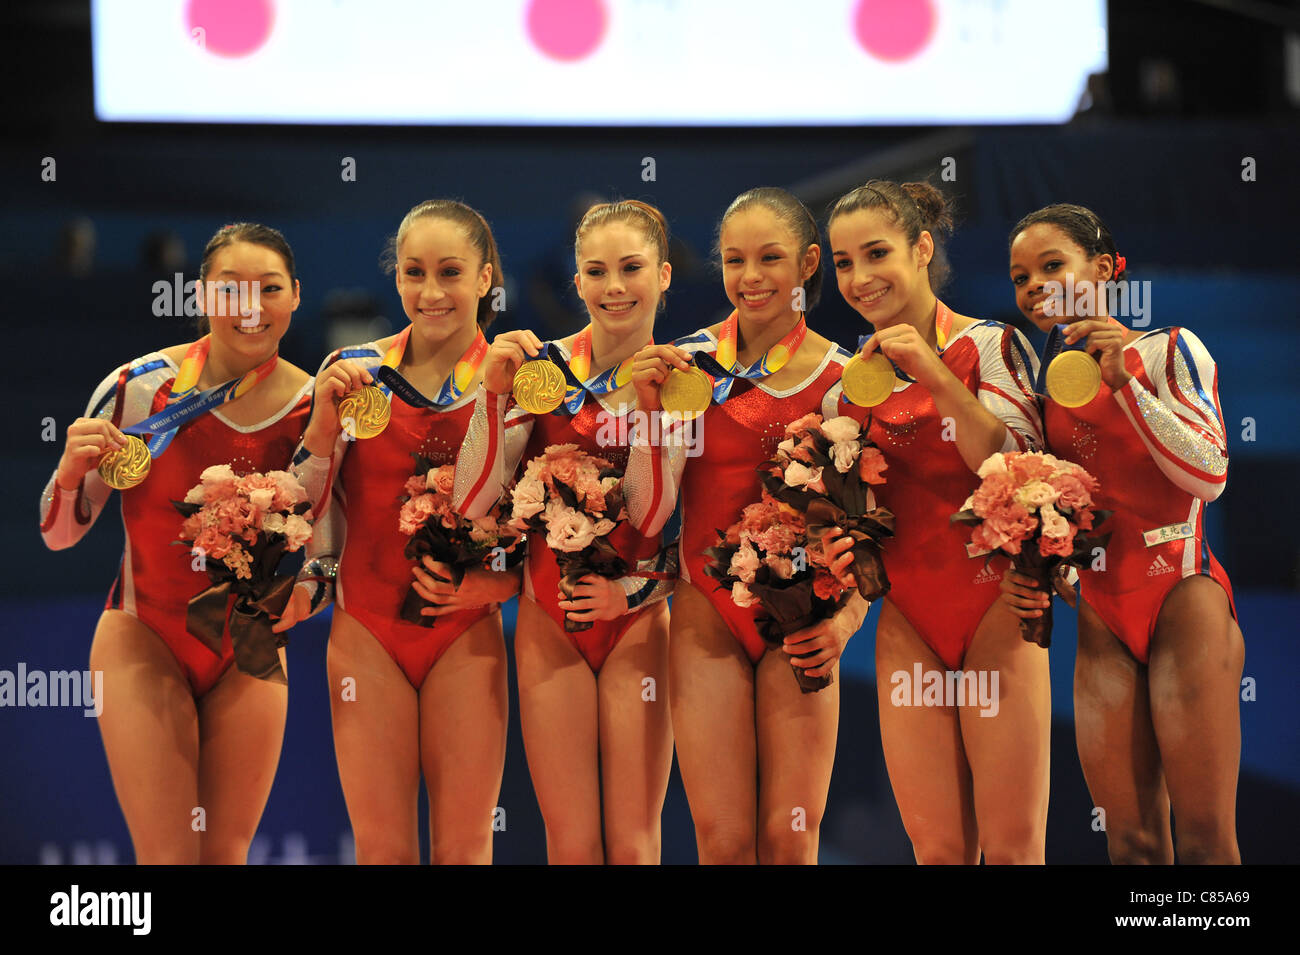 Team USA (USA) line-up during the 2011 Artistic Gymnastics World Championships. - Stock Image